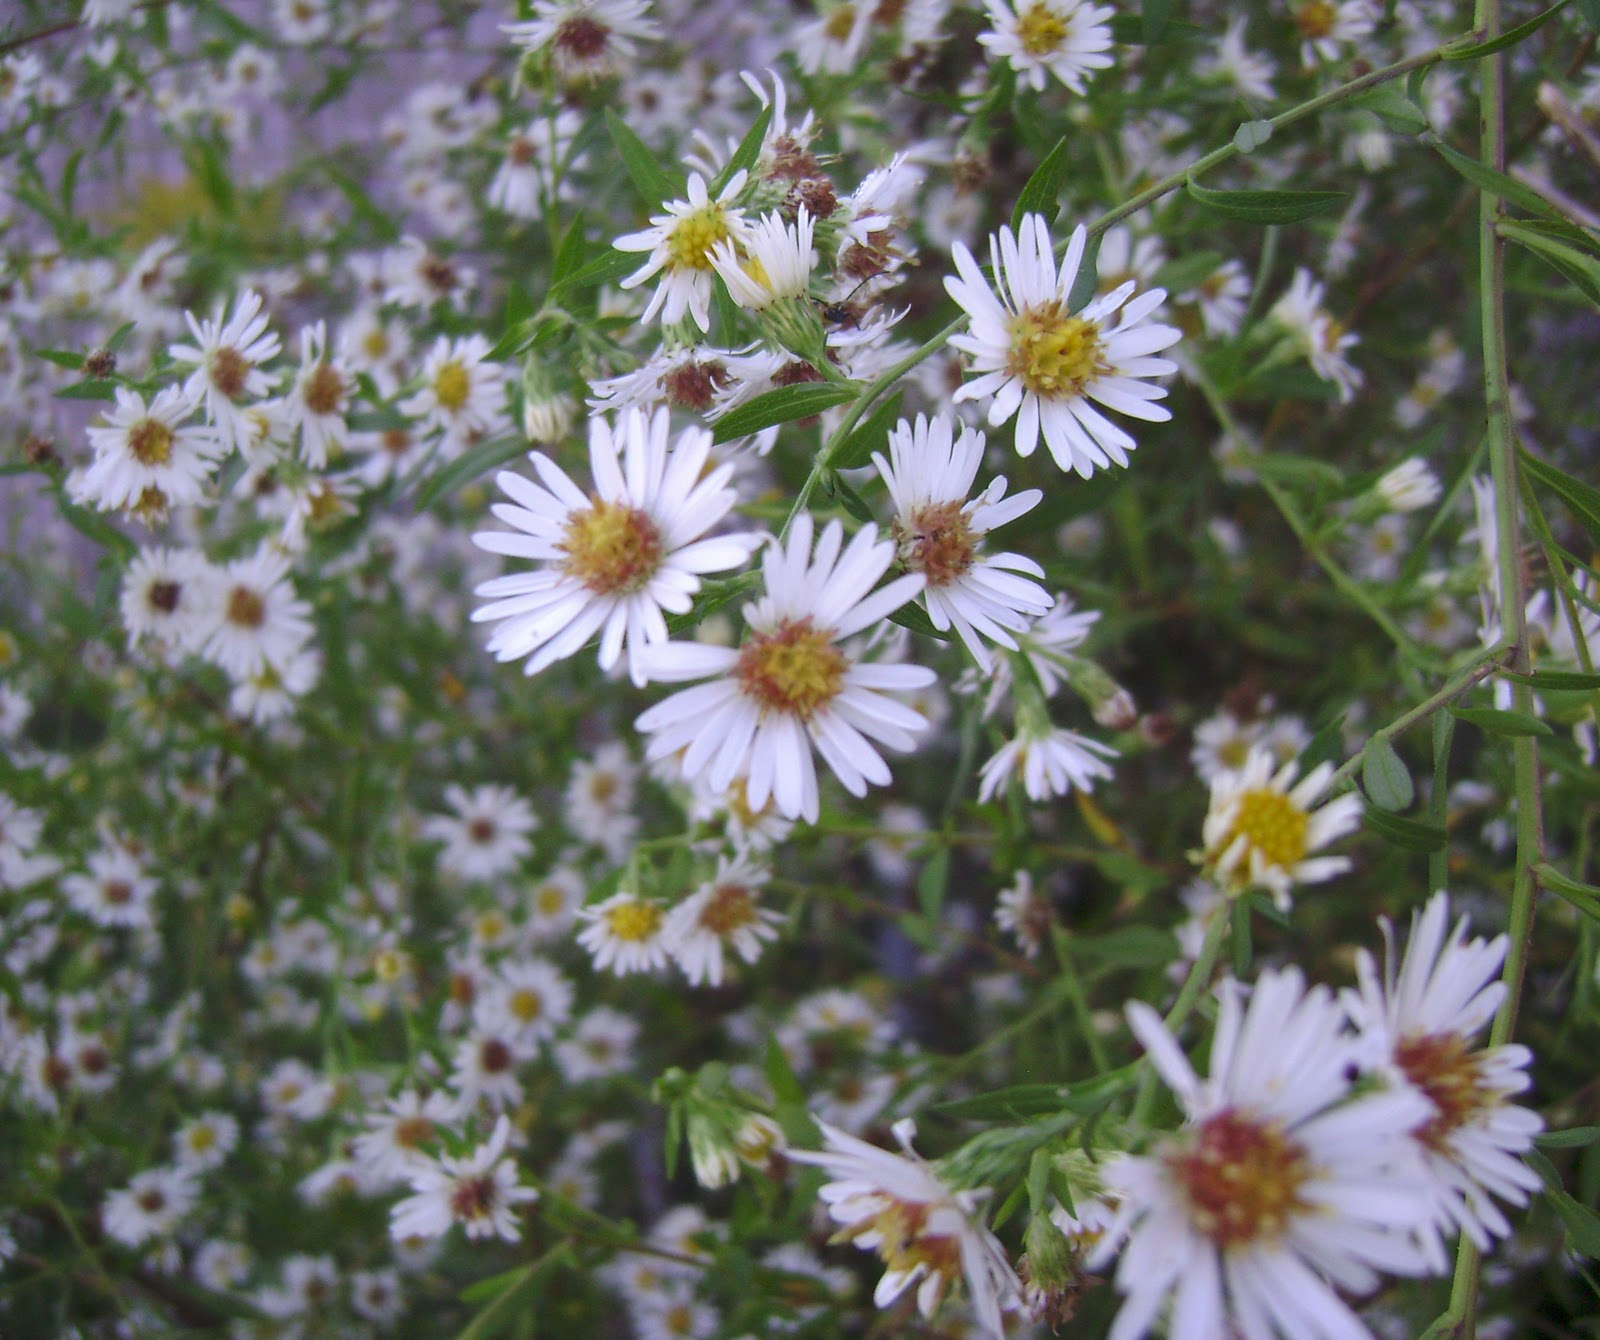 Prairie roses garden october 2010 aster pilosus is a widely branched spreading aster with tiny white flowers about 12 wide the flowers have 15 30 ray florets and a central yellow disk mightylinksfo